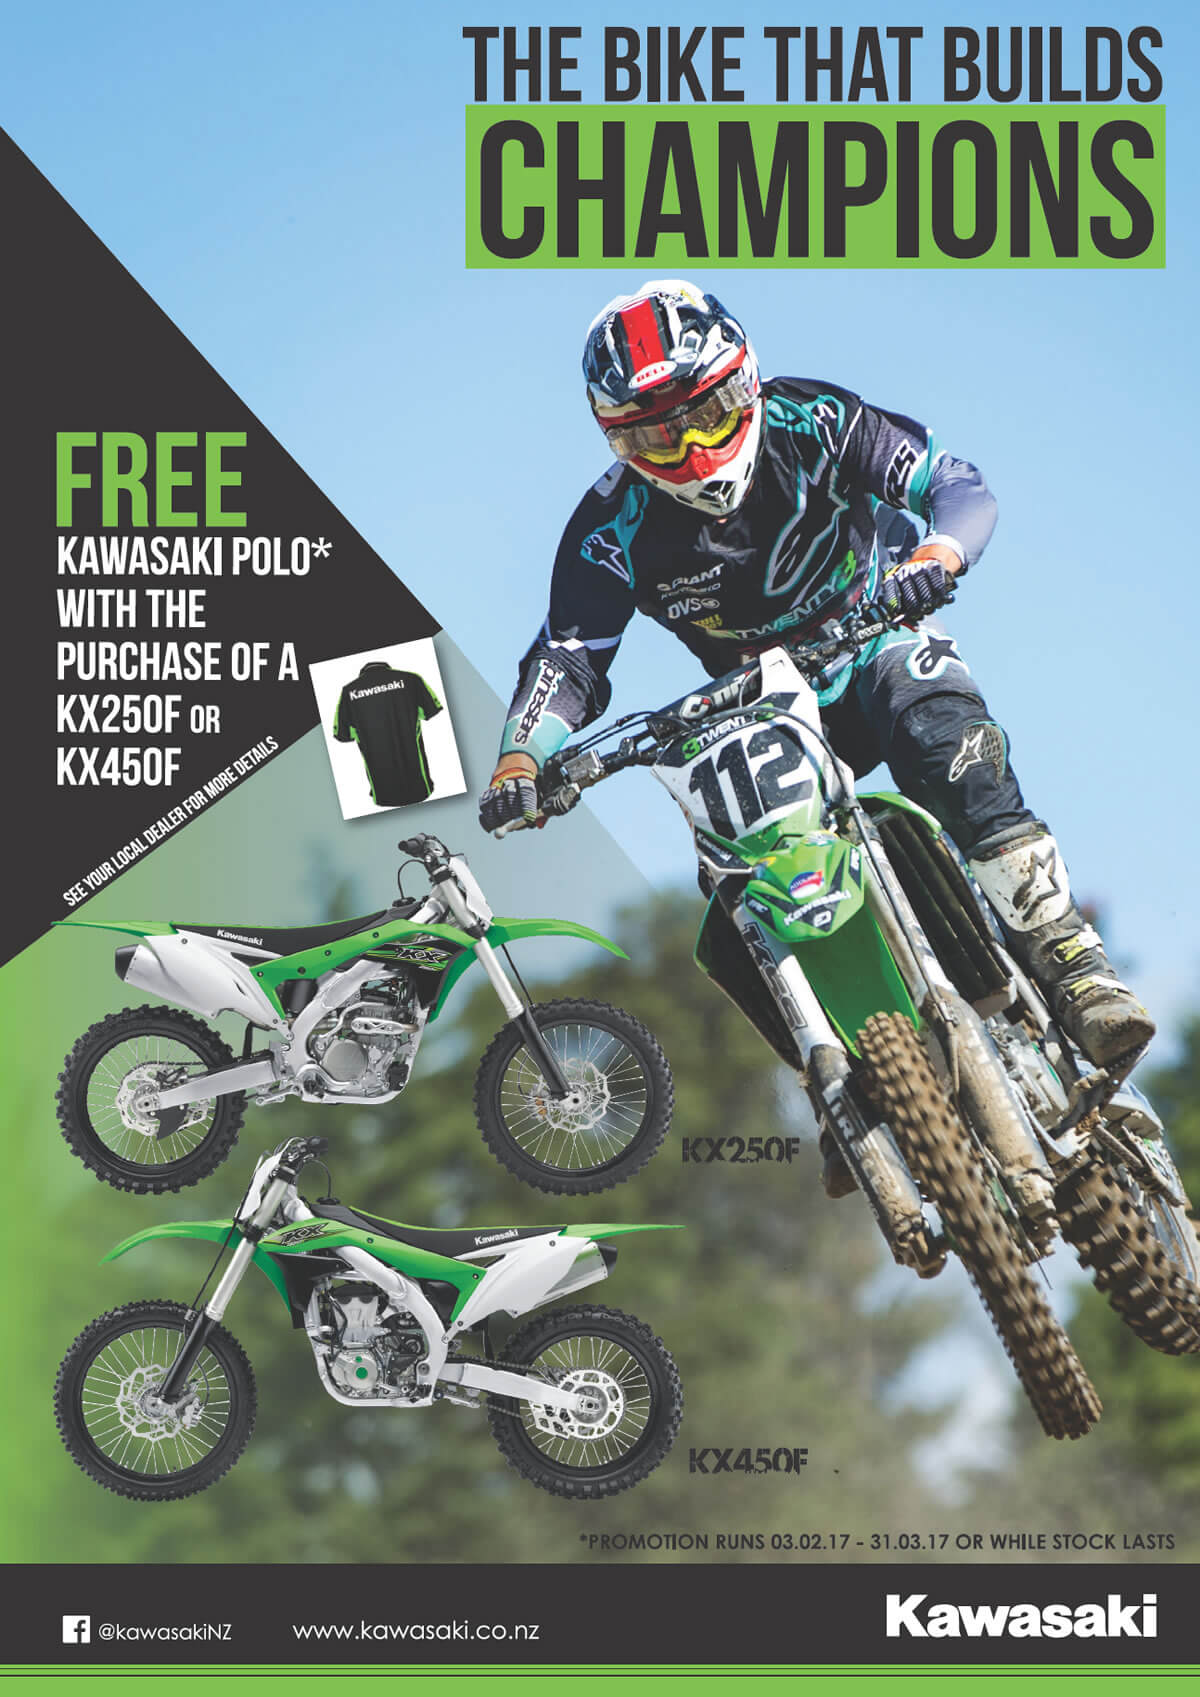 Free Kawasaki Polo with KX250F or KX450F